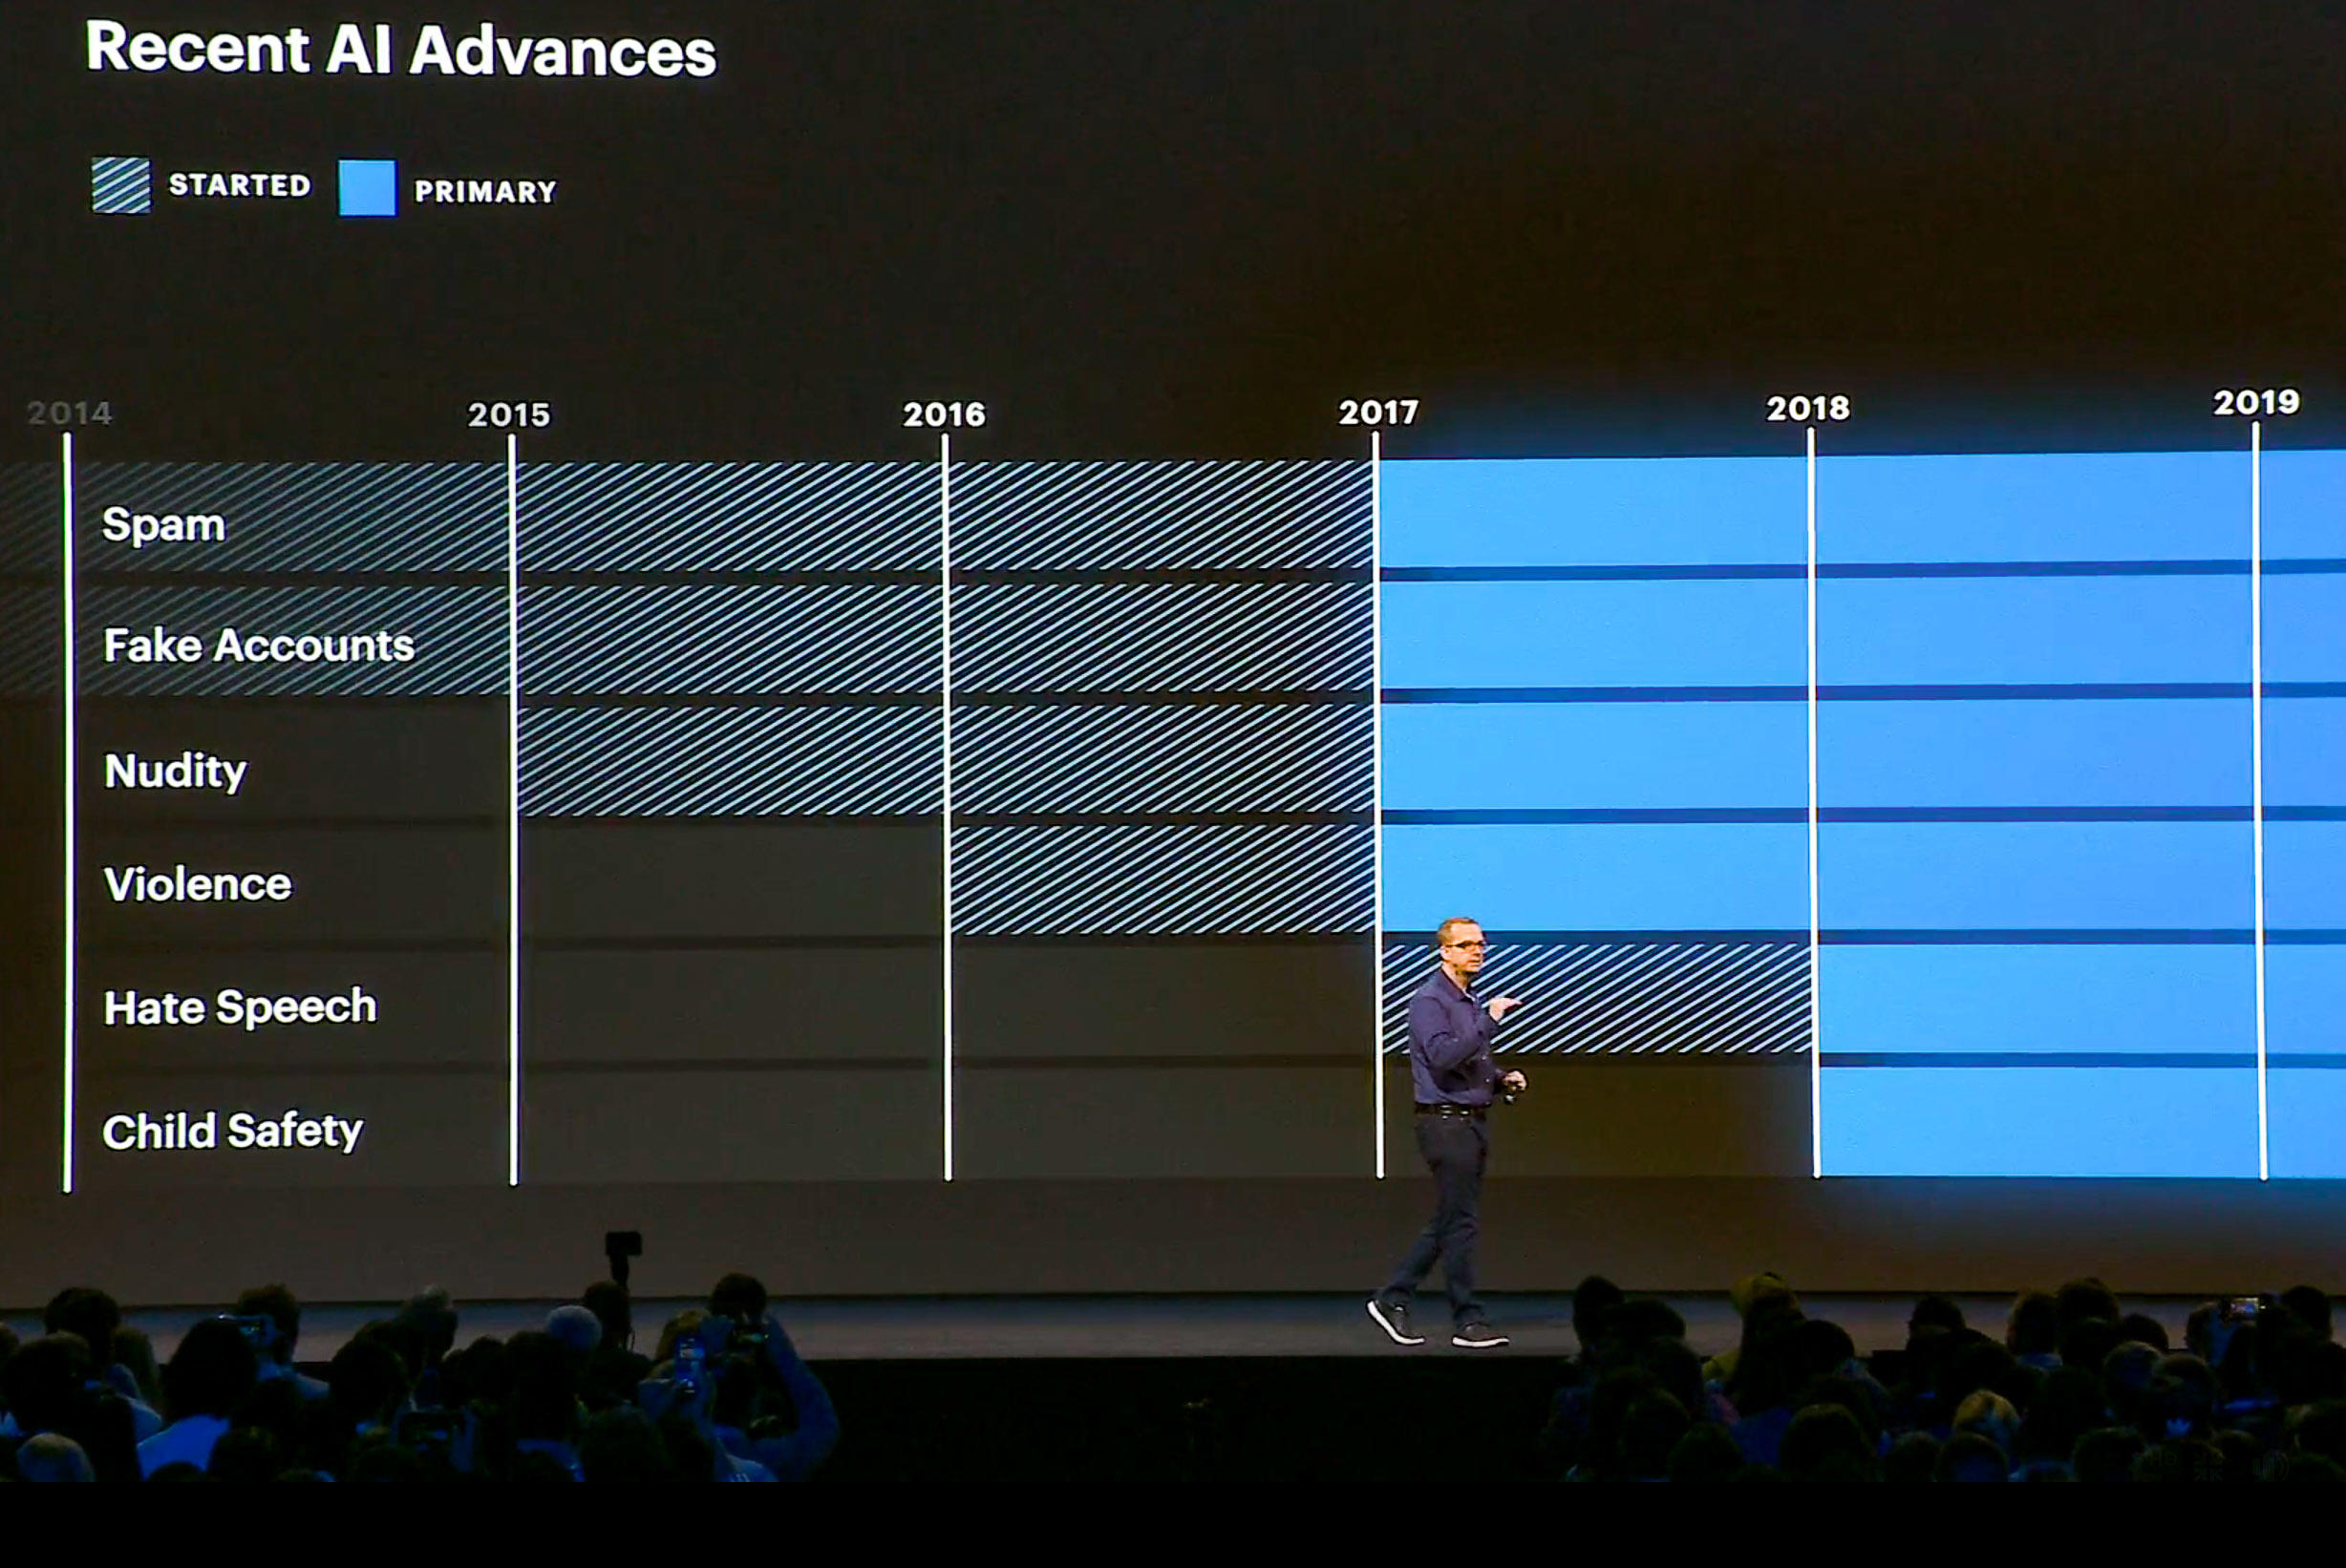 Facebook increasingly relies on AI to fix problems like spam and hate speech, CTO Mike Schroepfer said at the company's F8 developer conference.